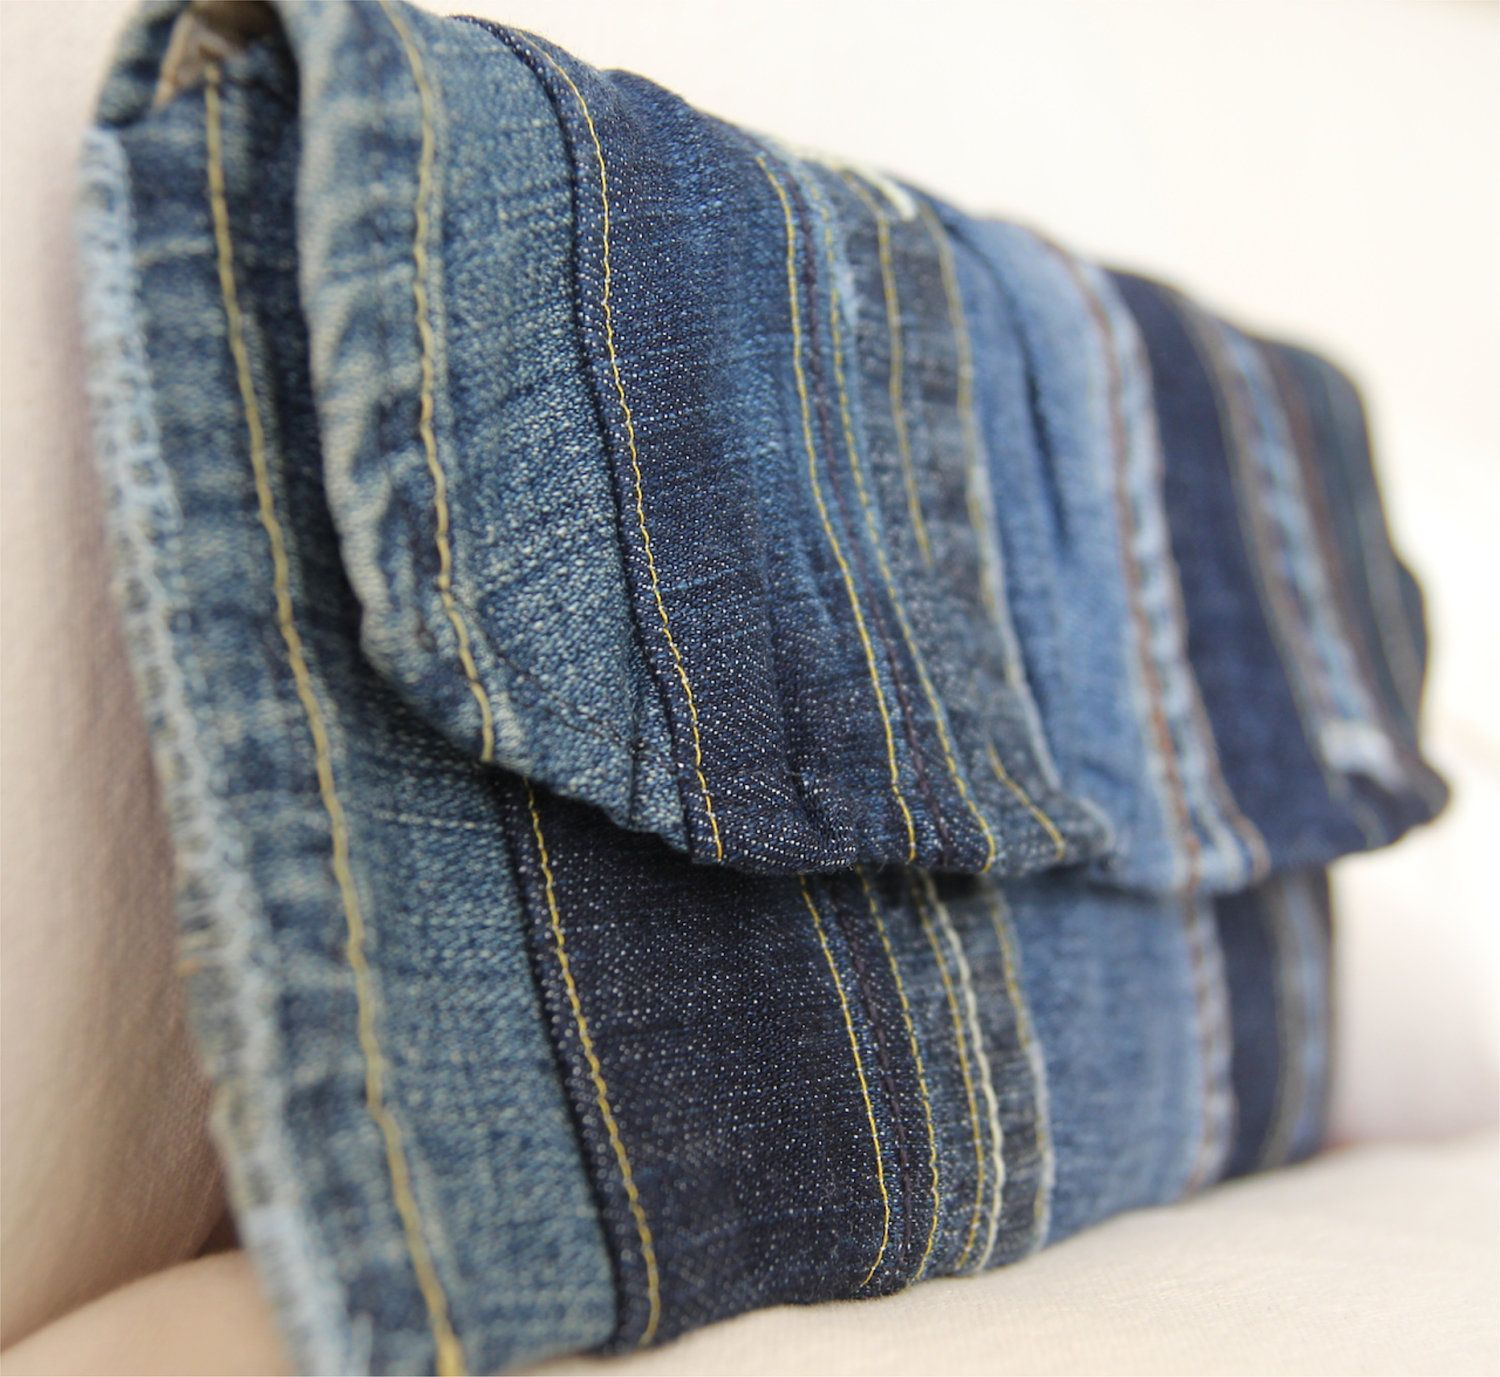 Denim Clutch made from Repurposed Jeans